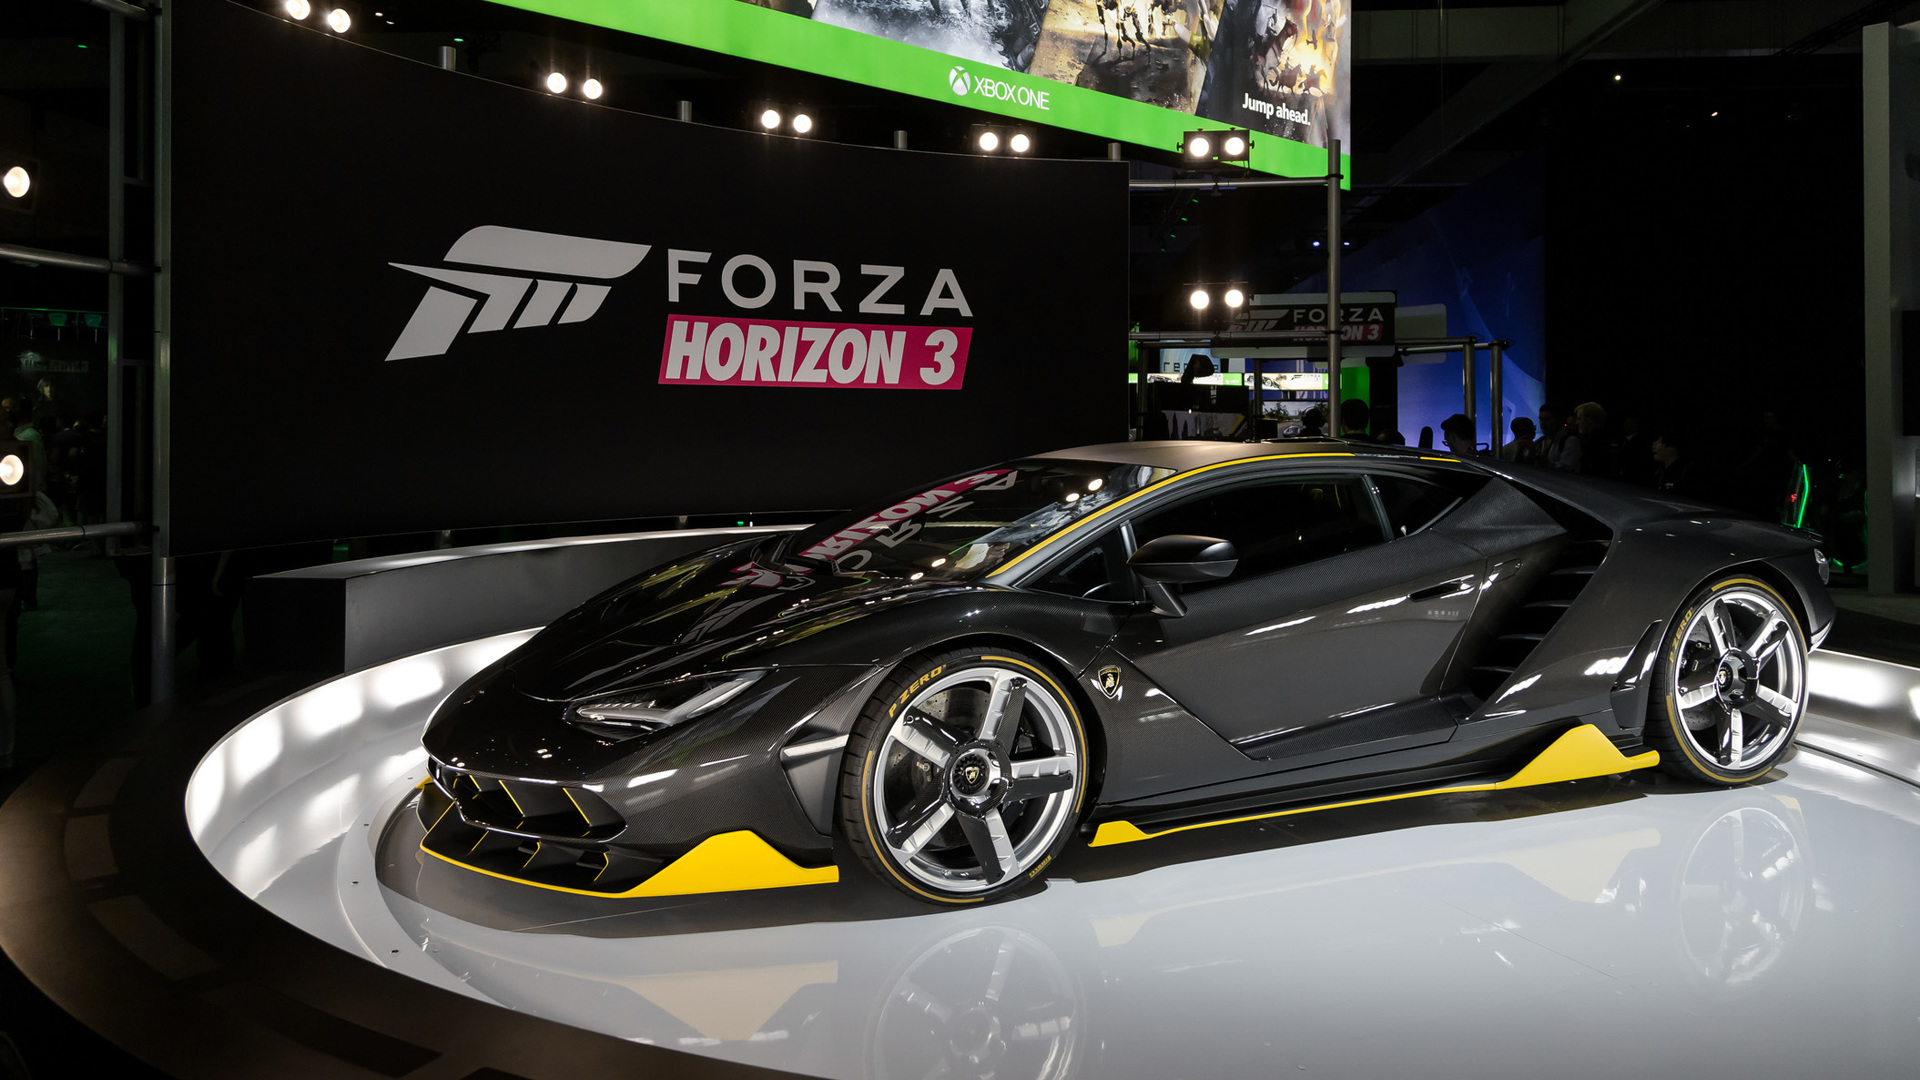 lamborghini centenario debuts in the u.s., we drive it in forza